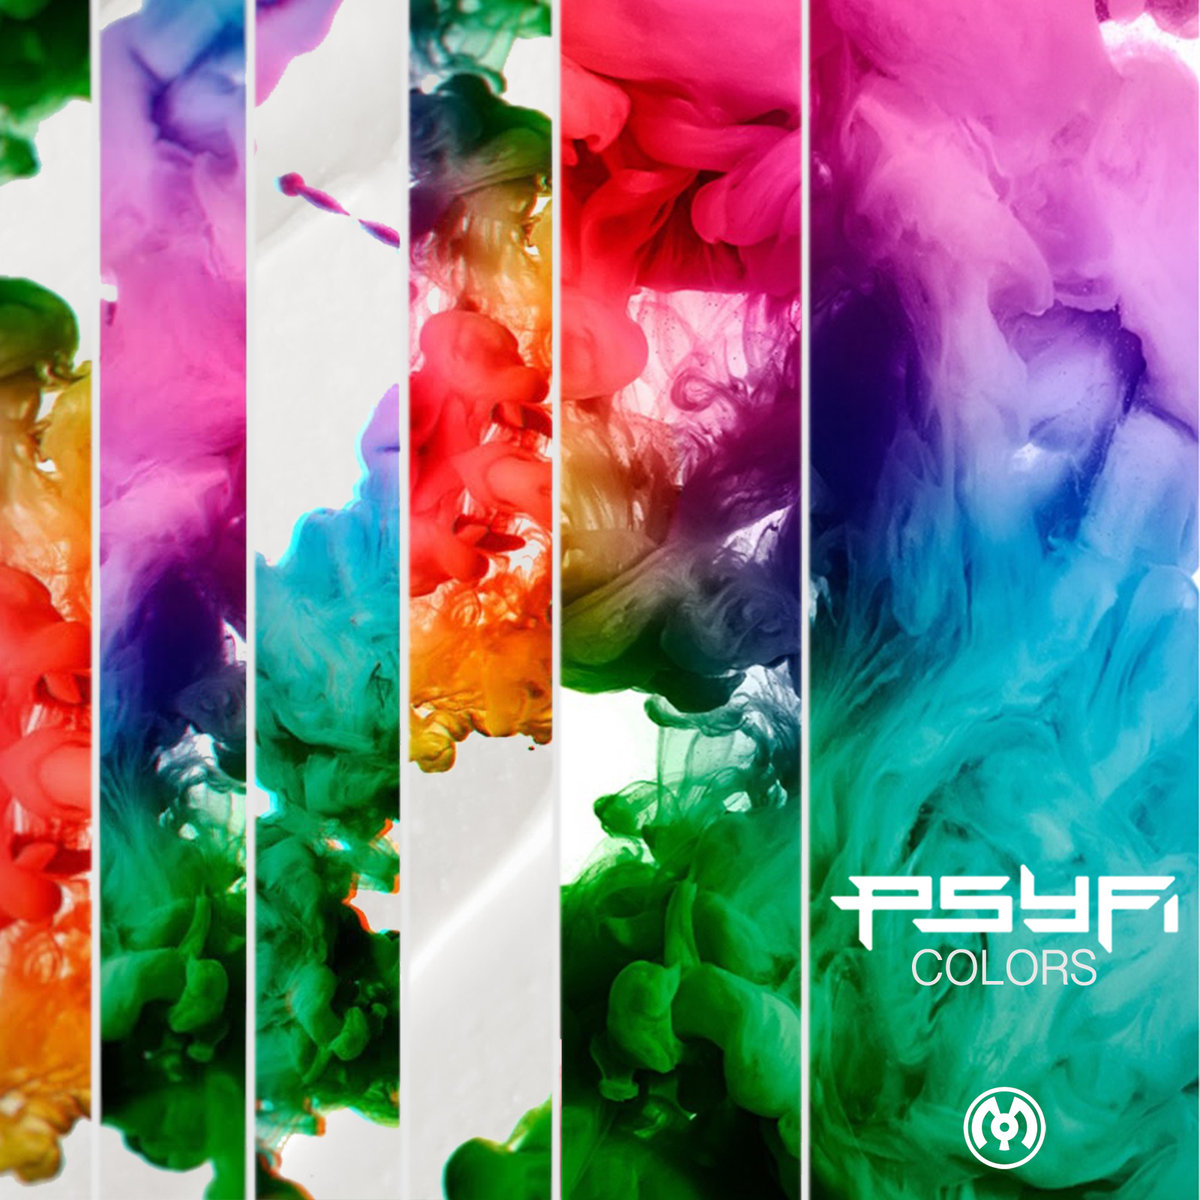 Psy Fi - You Lift Me Up (Hollis Remix) @ 'Colors' album (electronic, dubstep)